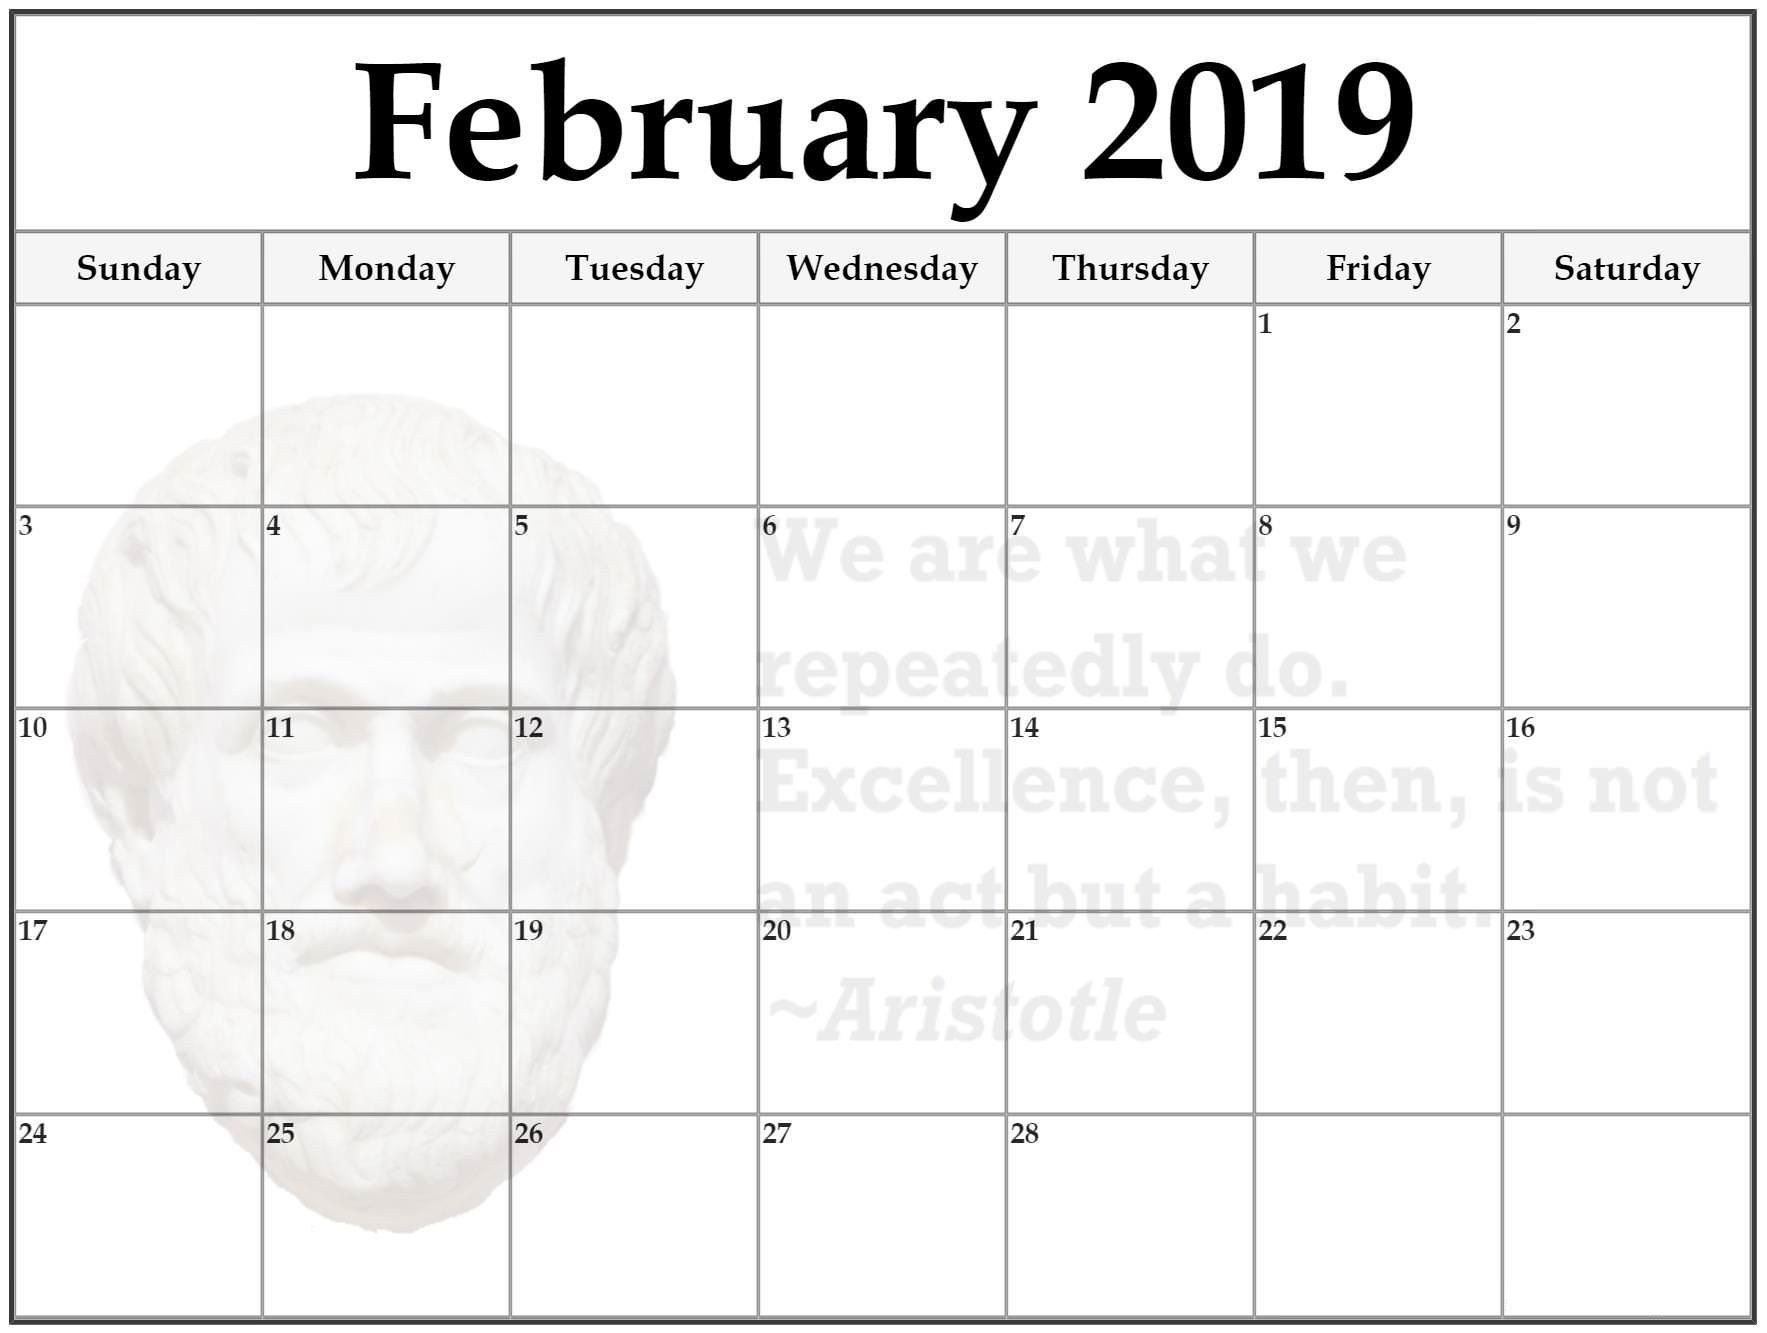 Next Year Calendar 2019 Malayalam With February Format Example